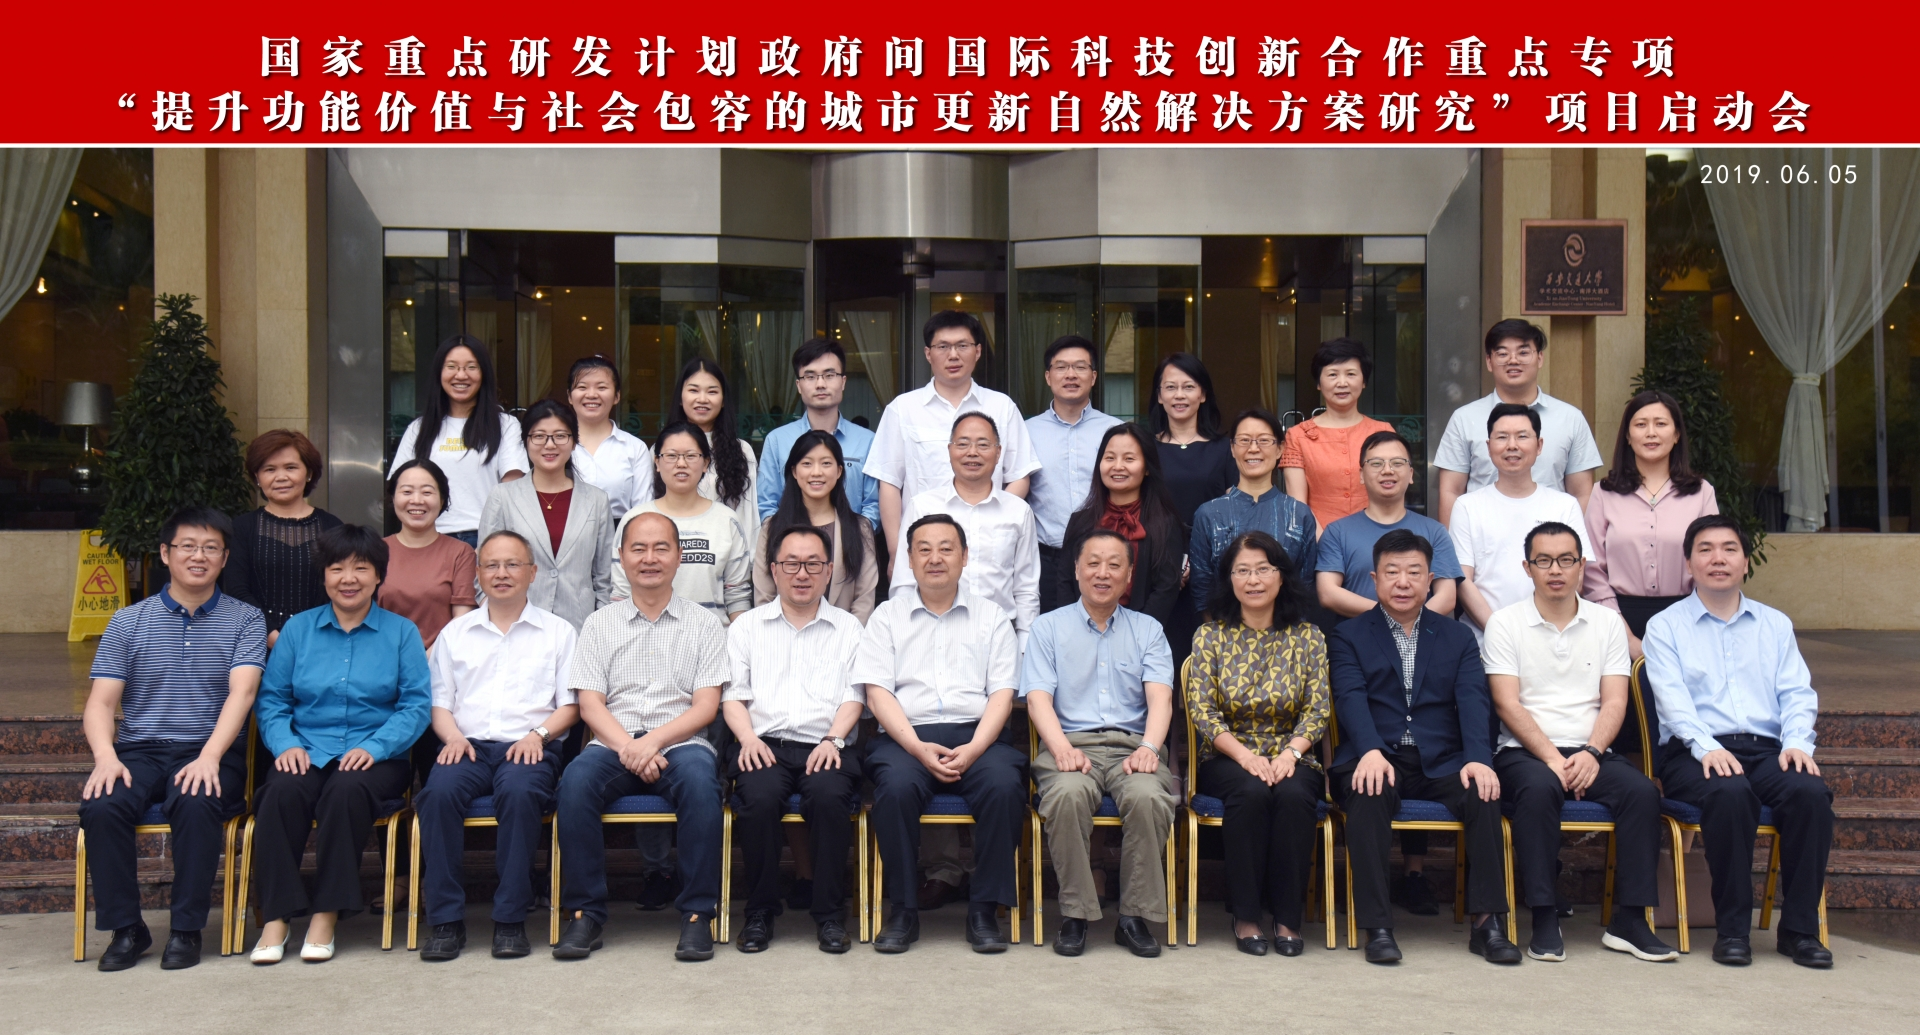 Chinese research teams officially kick off in Xi'an